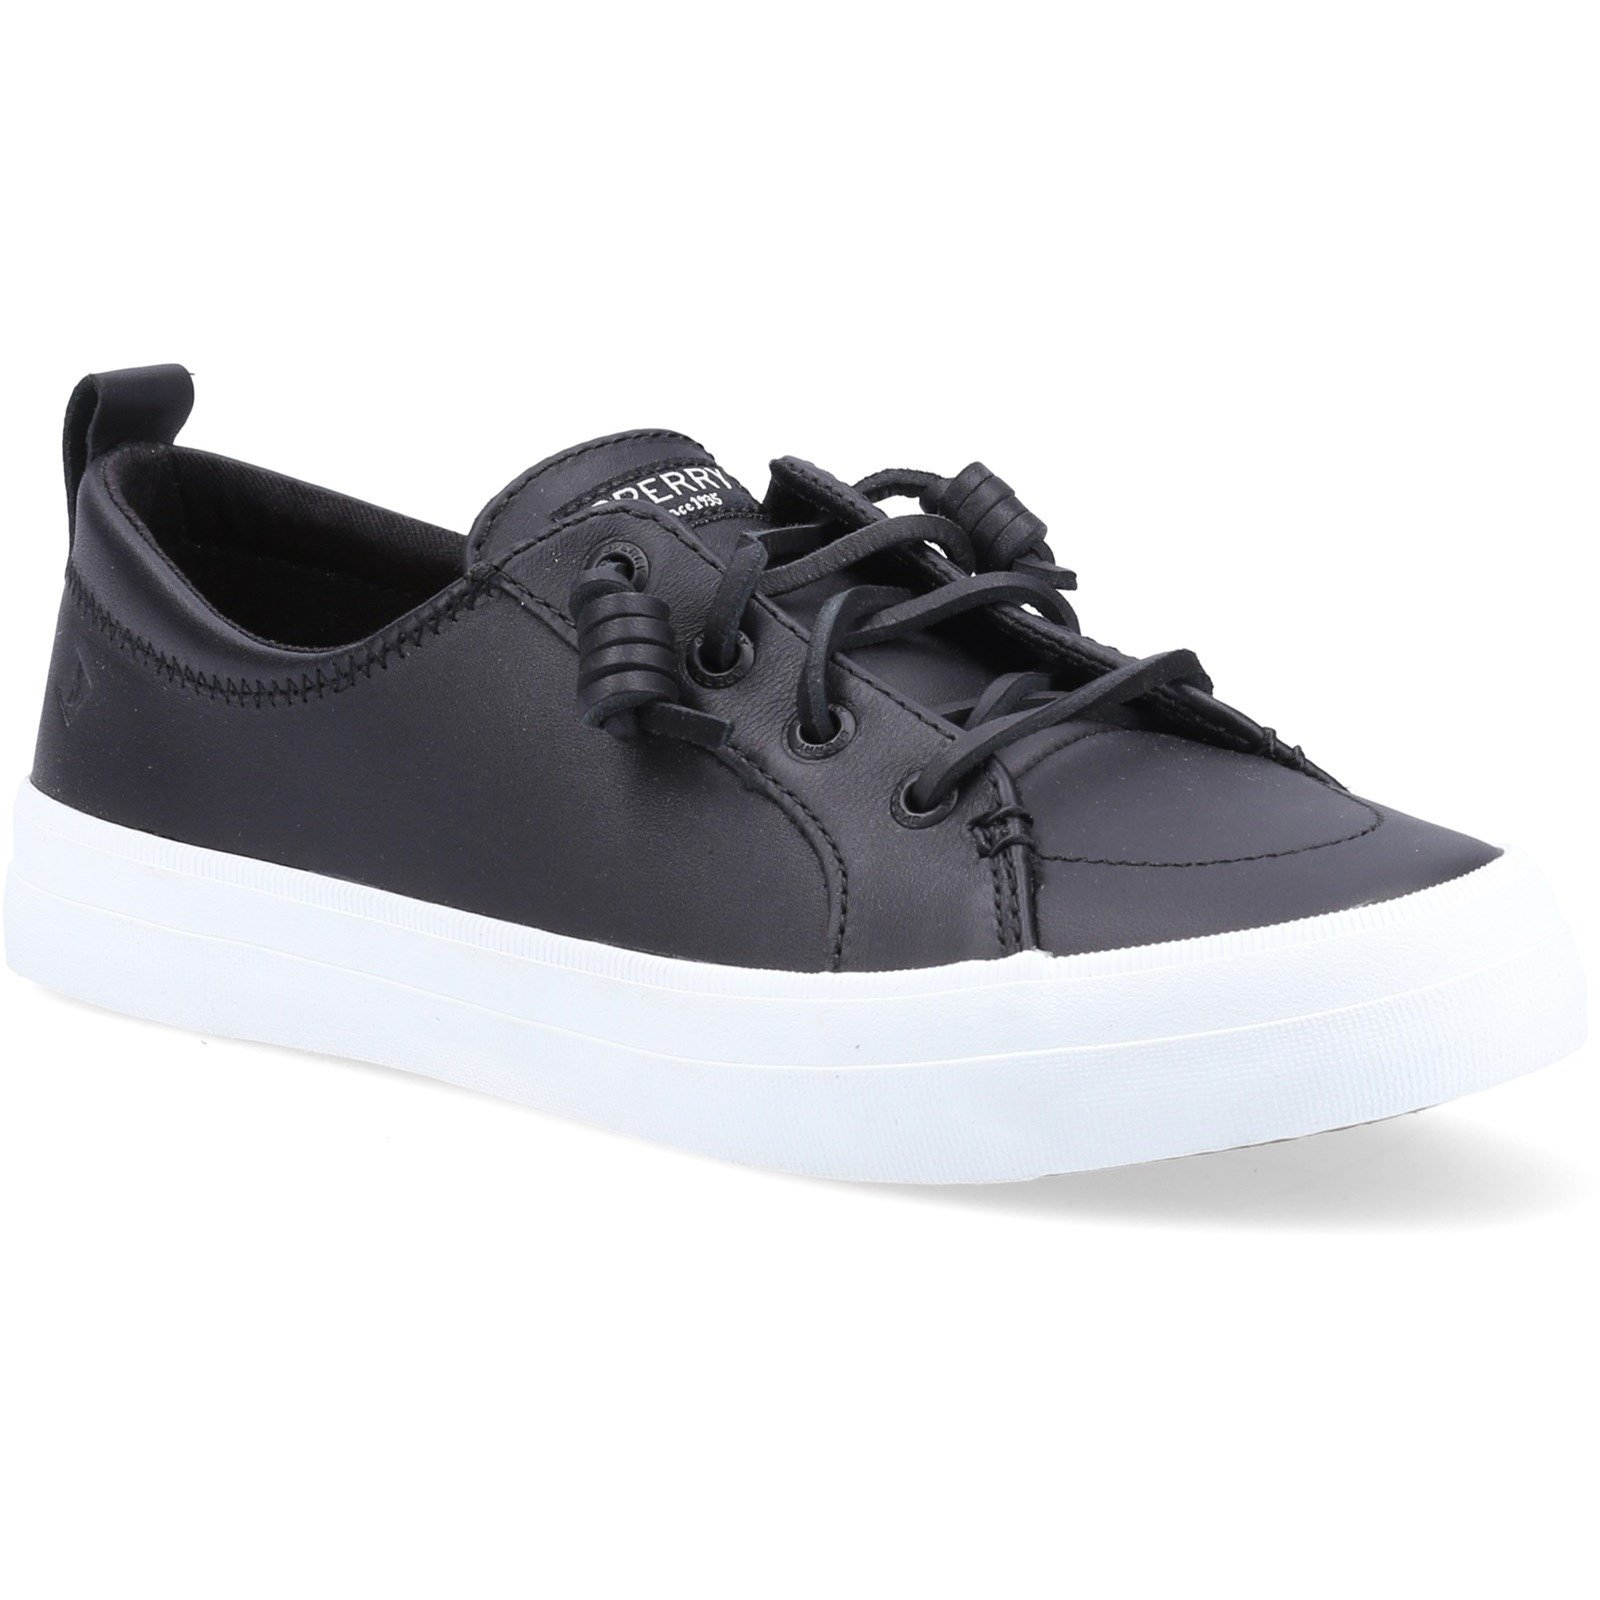 Sperry Women's Crest Vibe Leather Trainers Black 32404 - Black 5